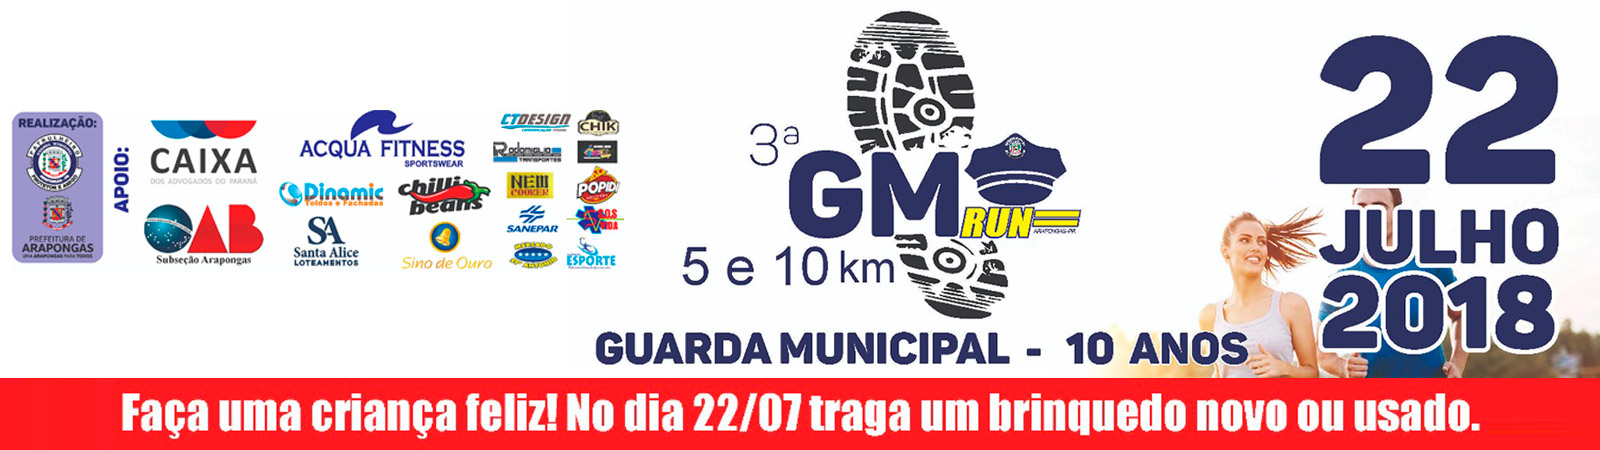 3° GM RUN ARAPONGAS